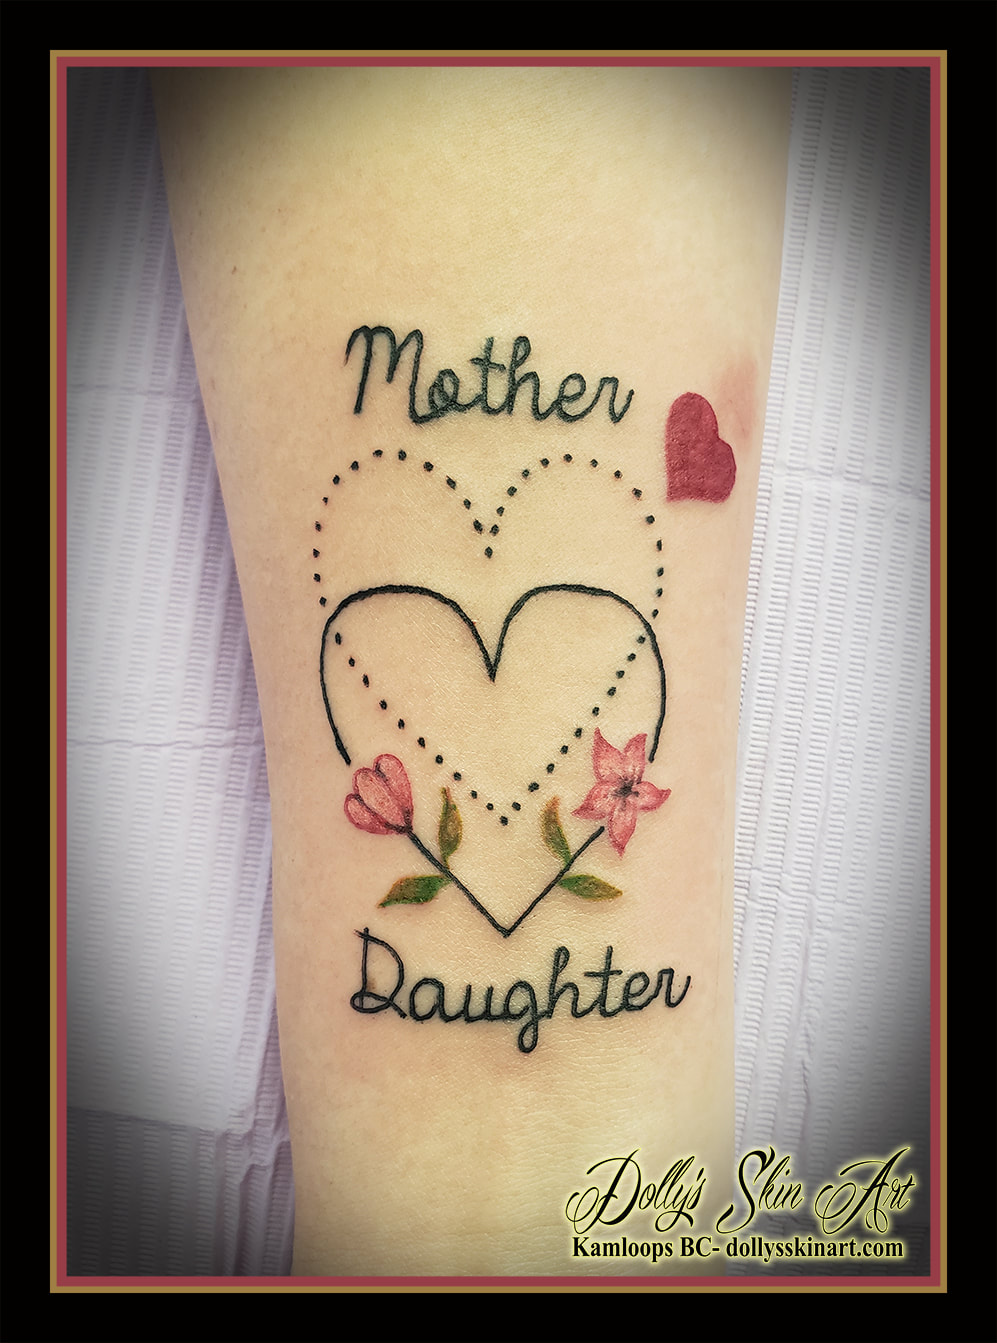 mother daughter matching tattoo heart flowers dots lettering font script black pink green tattoo kamloops dolly's skin art